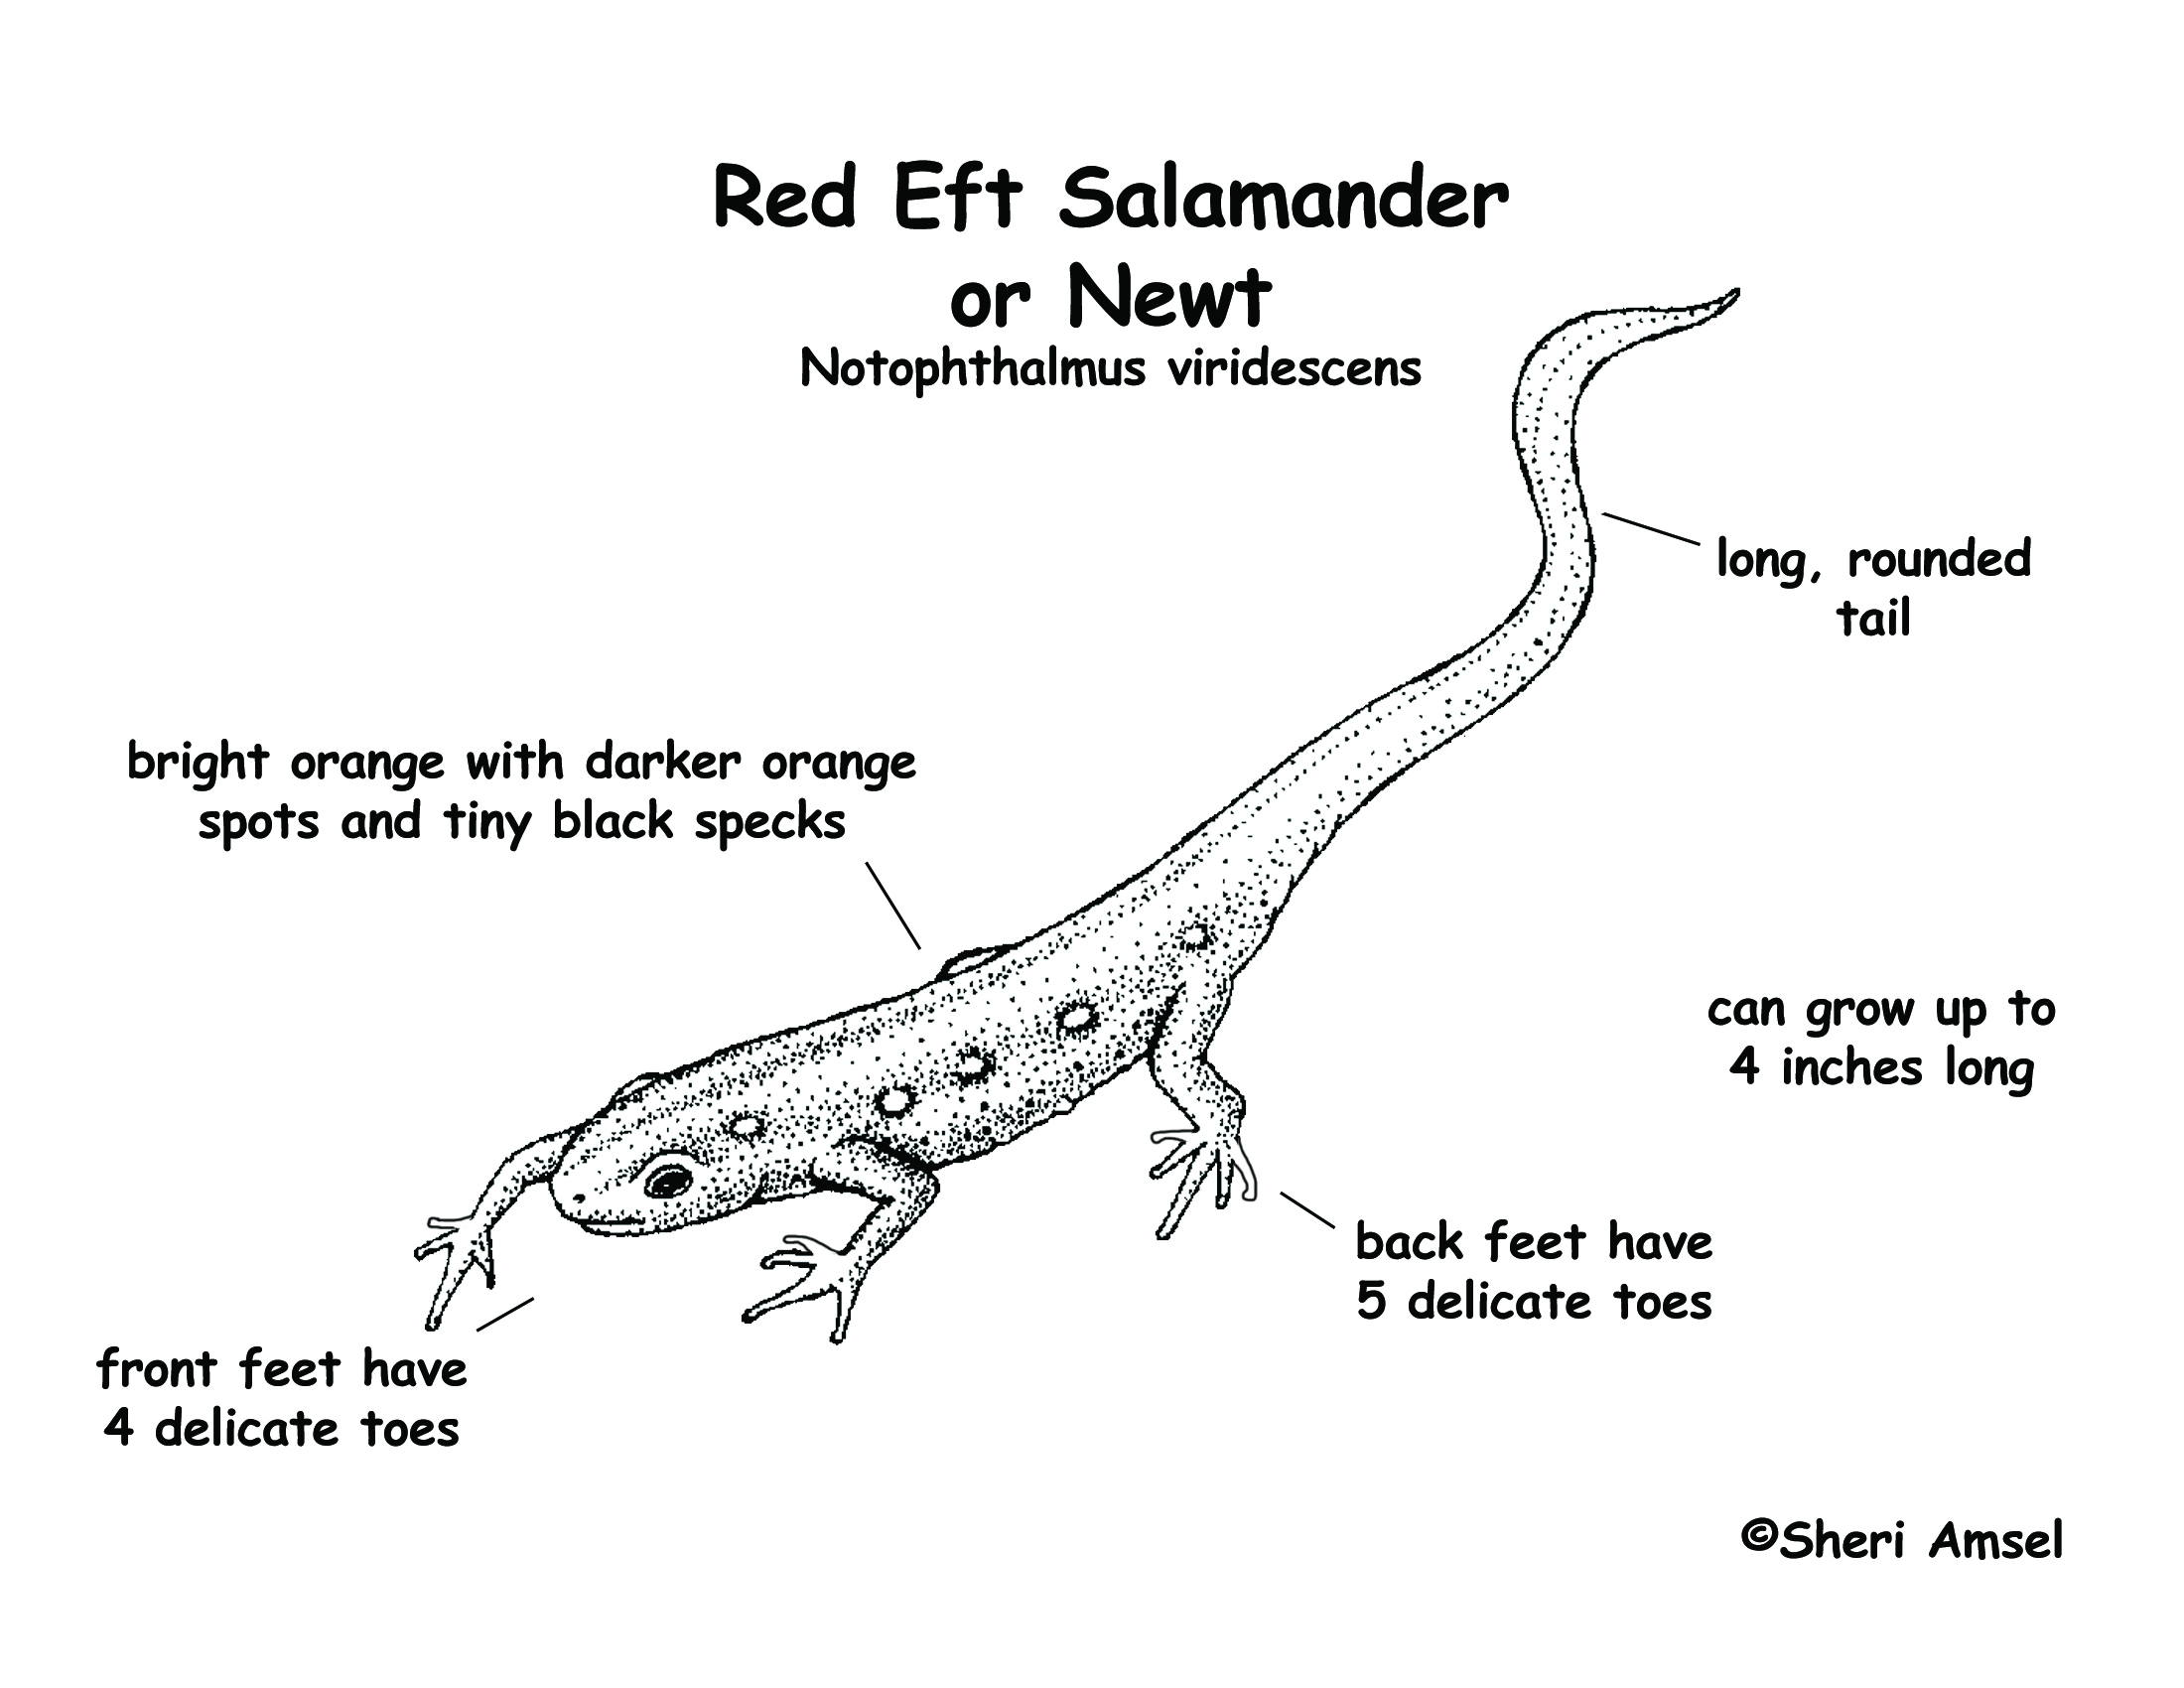 Salamander Red Eft Or Newt